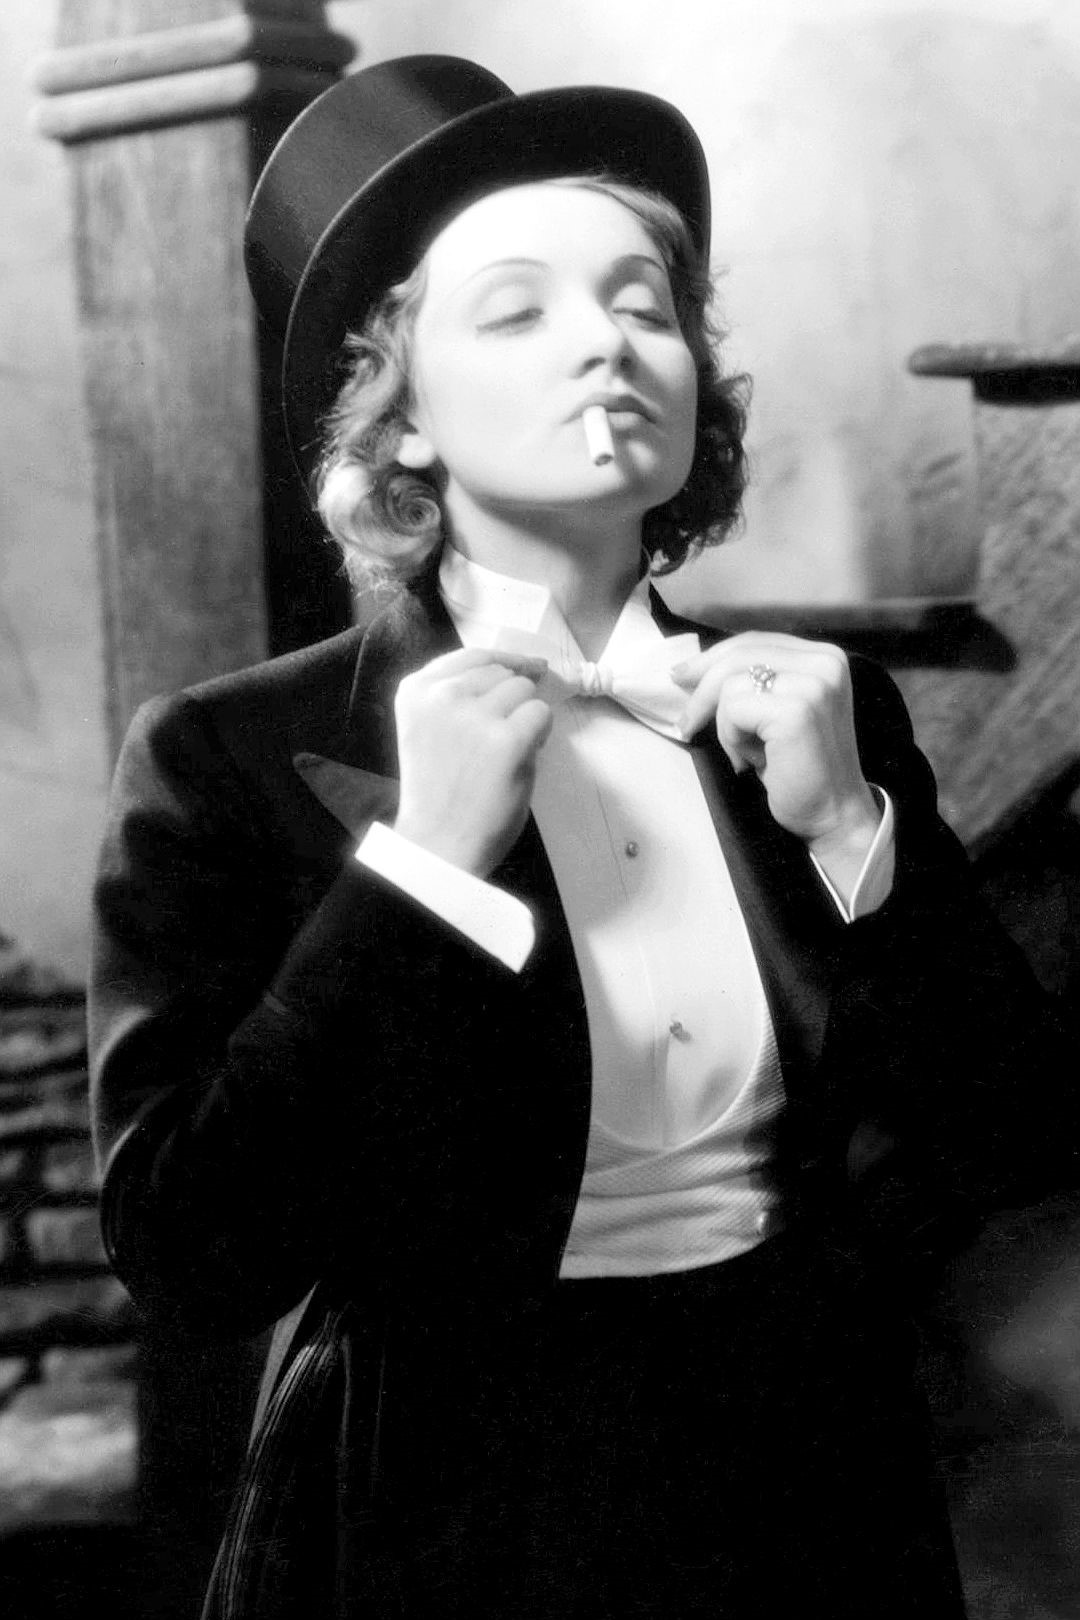 Audrey Hepburn Cappello Its A Mans World Marlene Dietrich And Her Cross